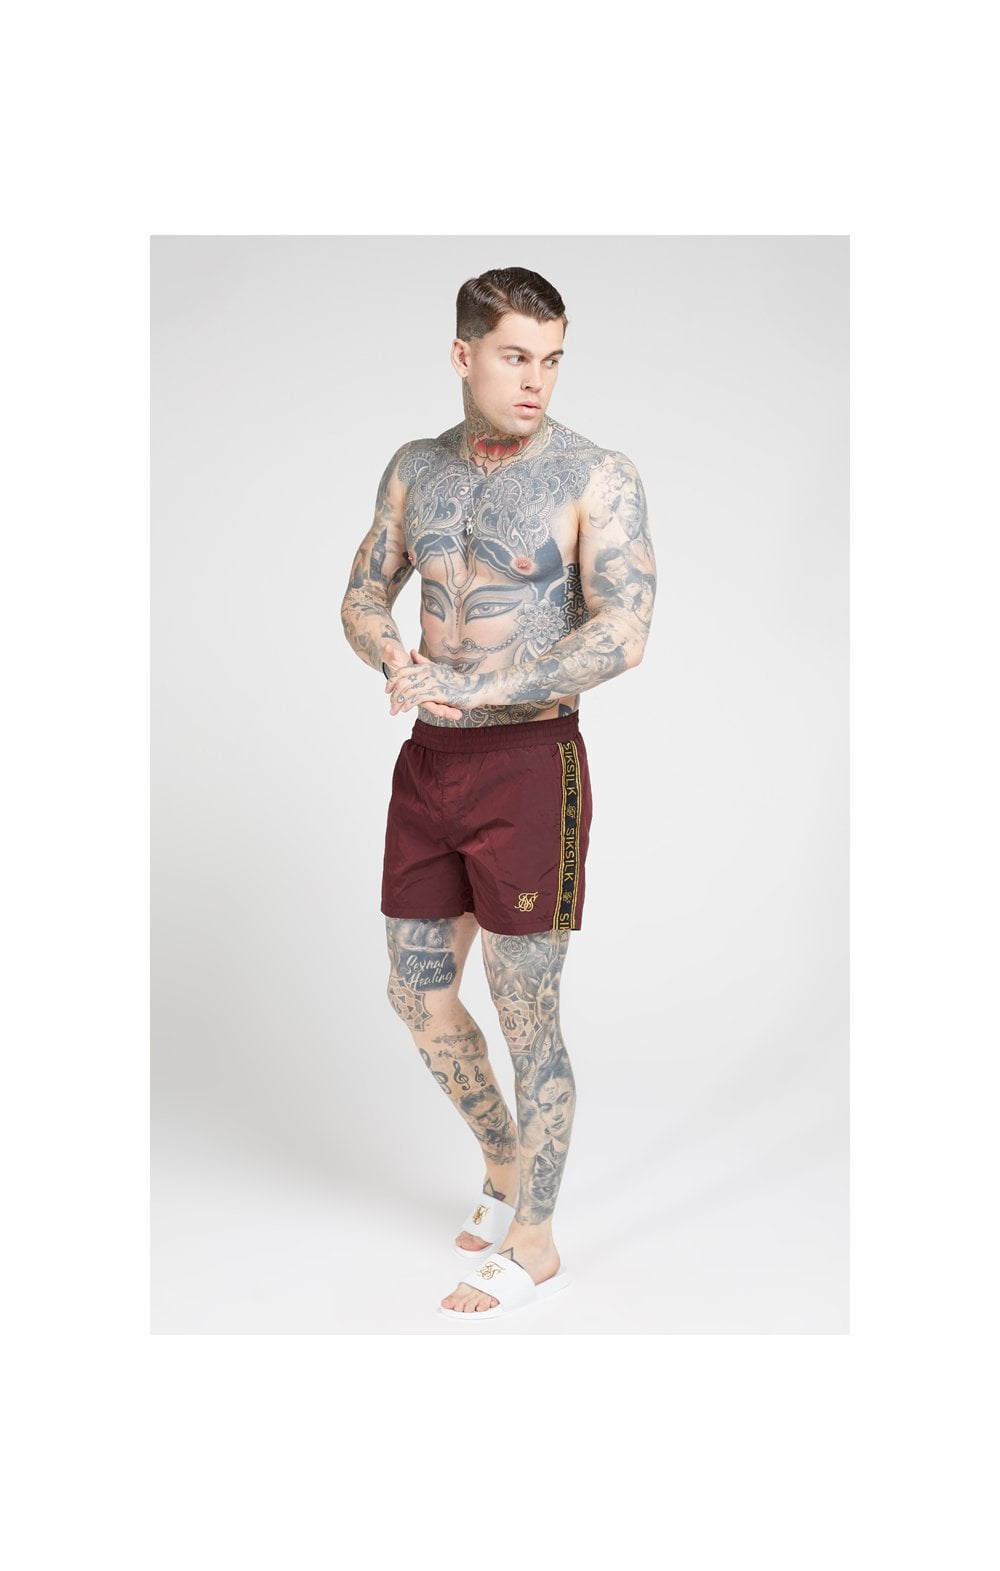 SikSilk Crushed Nylon Tape Shorts – Burgundy & Gold (2)